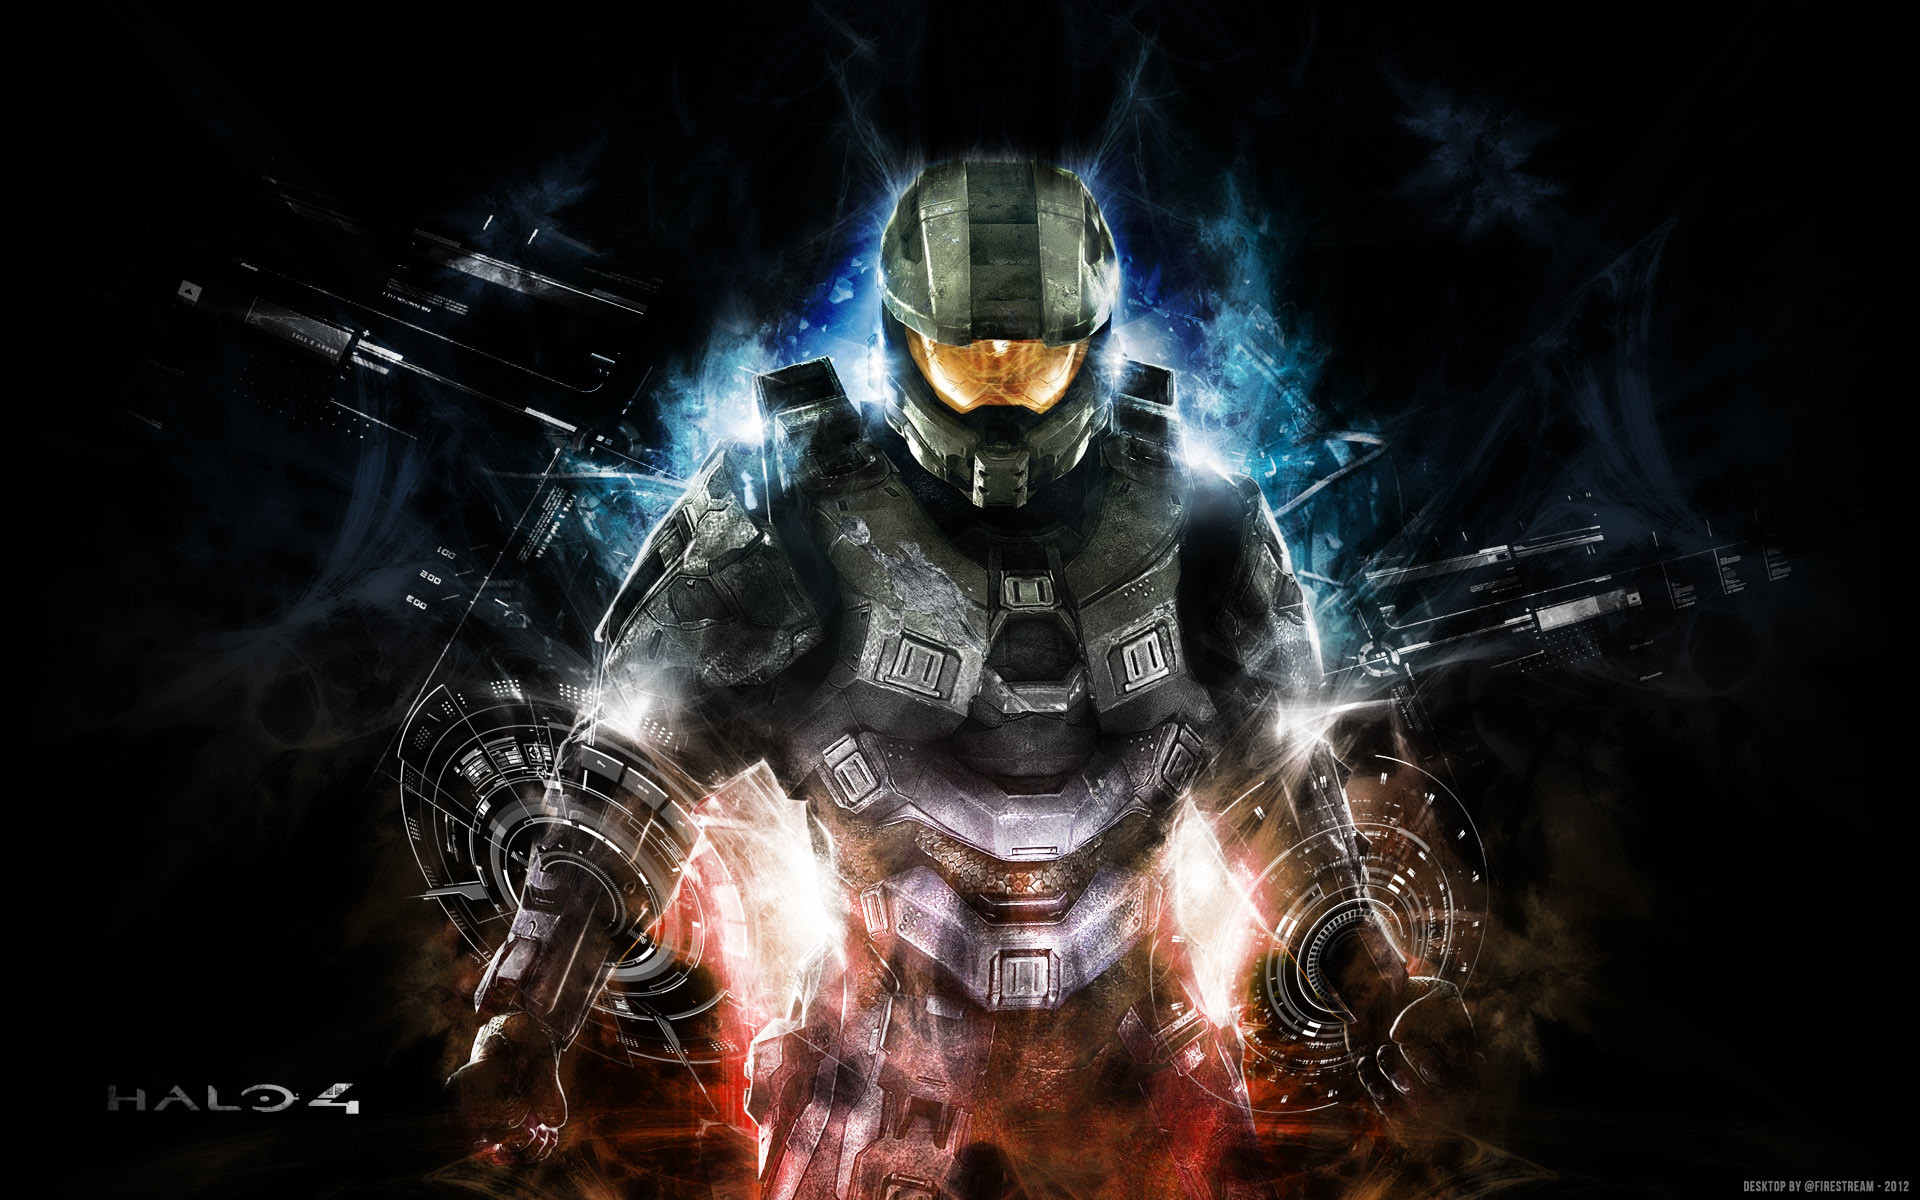 Awesome Halo Theme With HD Wallpapers 1280×720 Halo 4 Wallpapers HD (51  Wallpapers